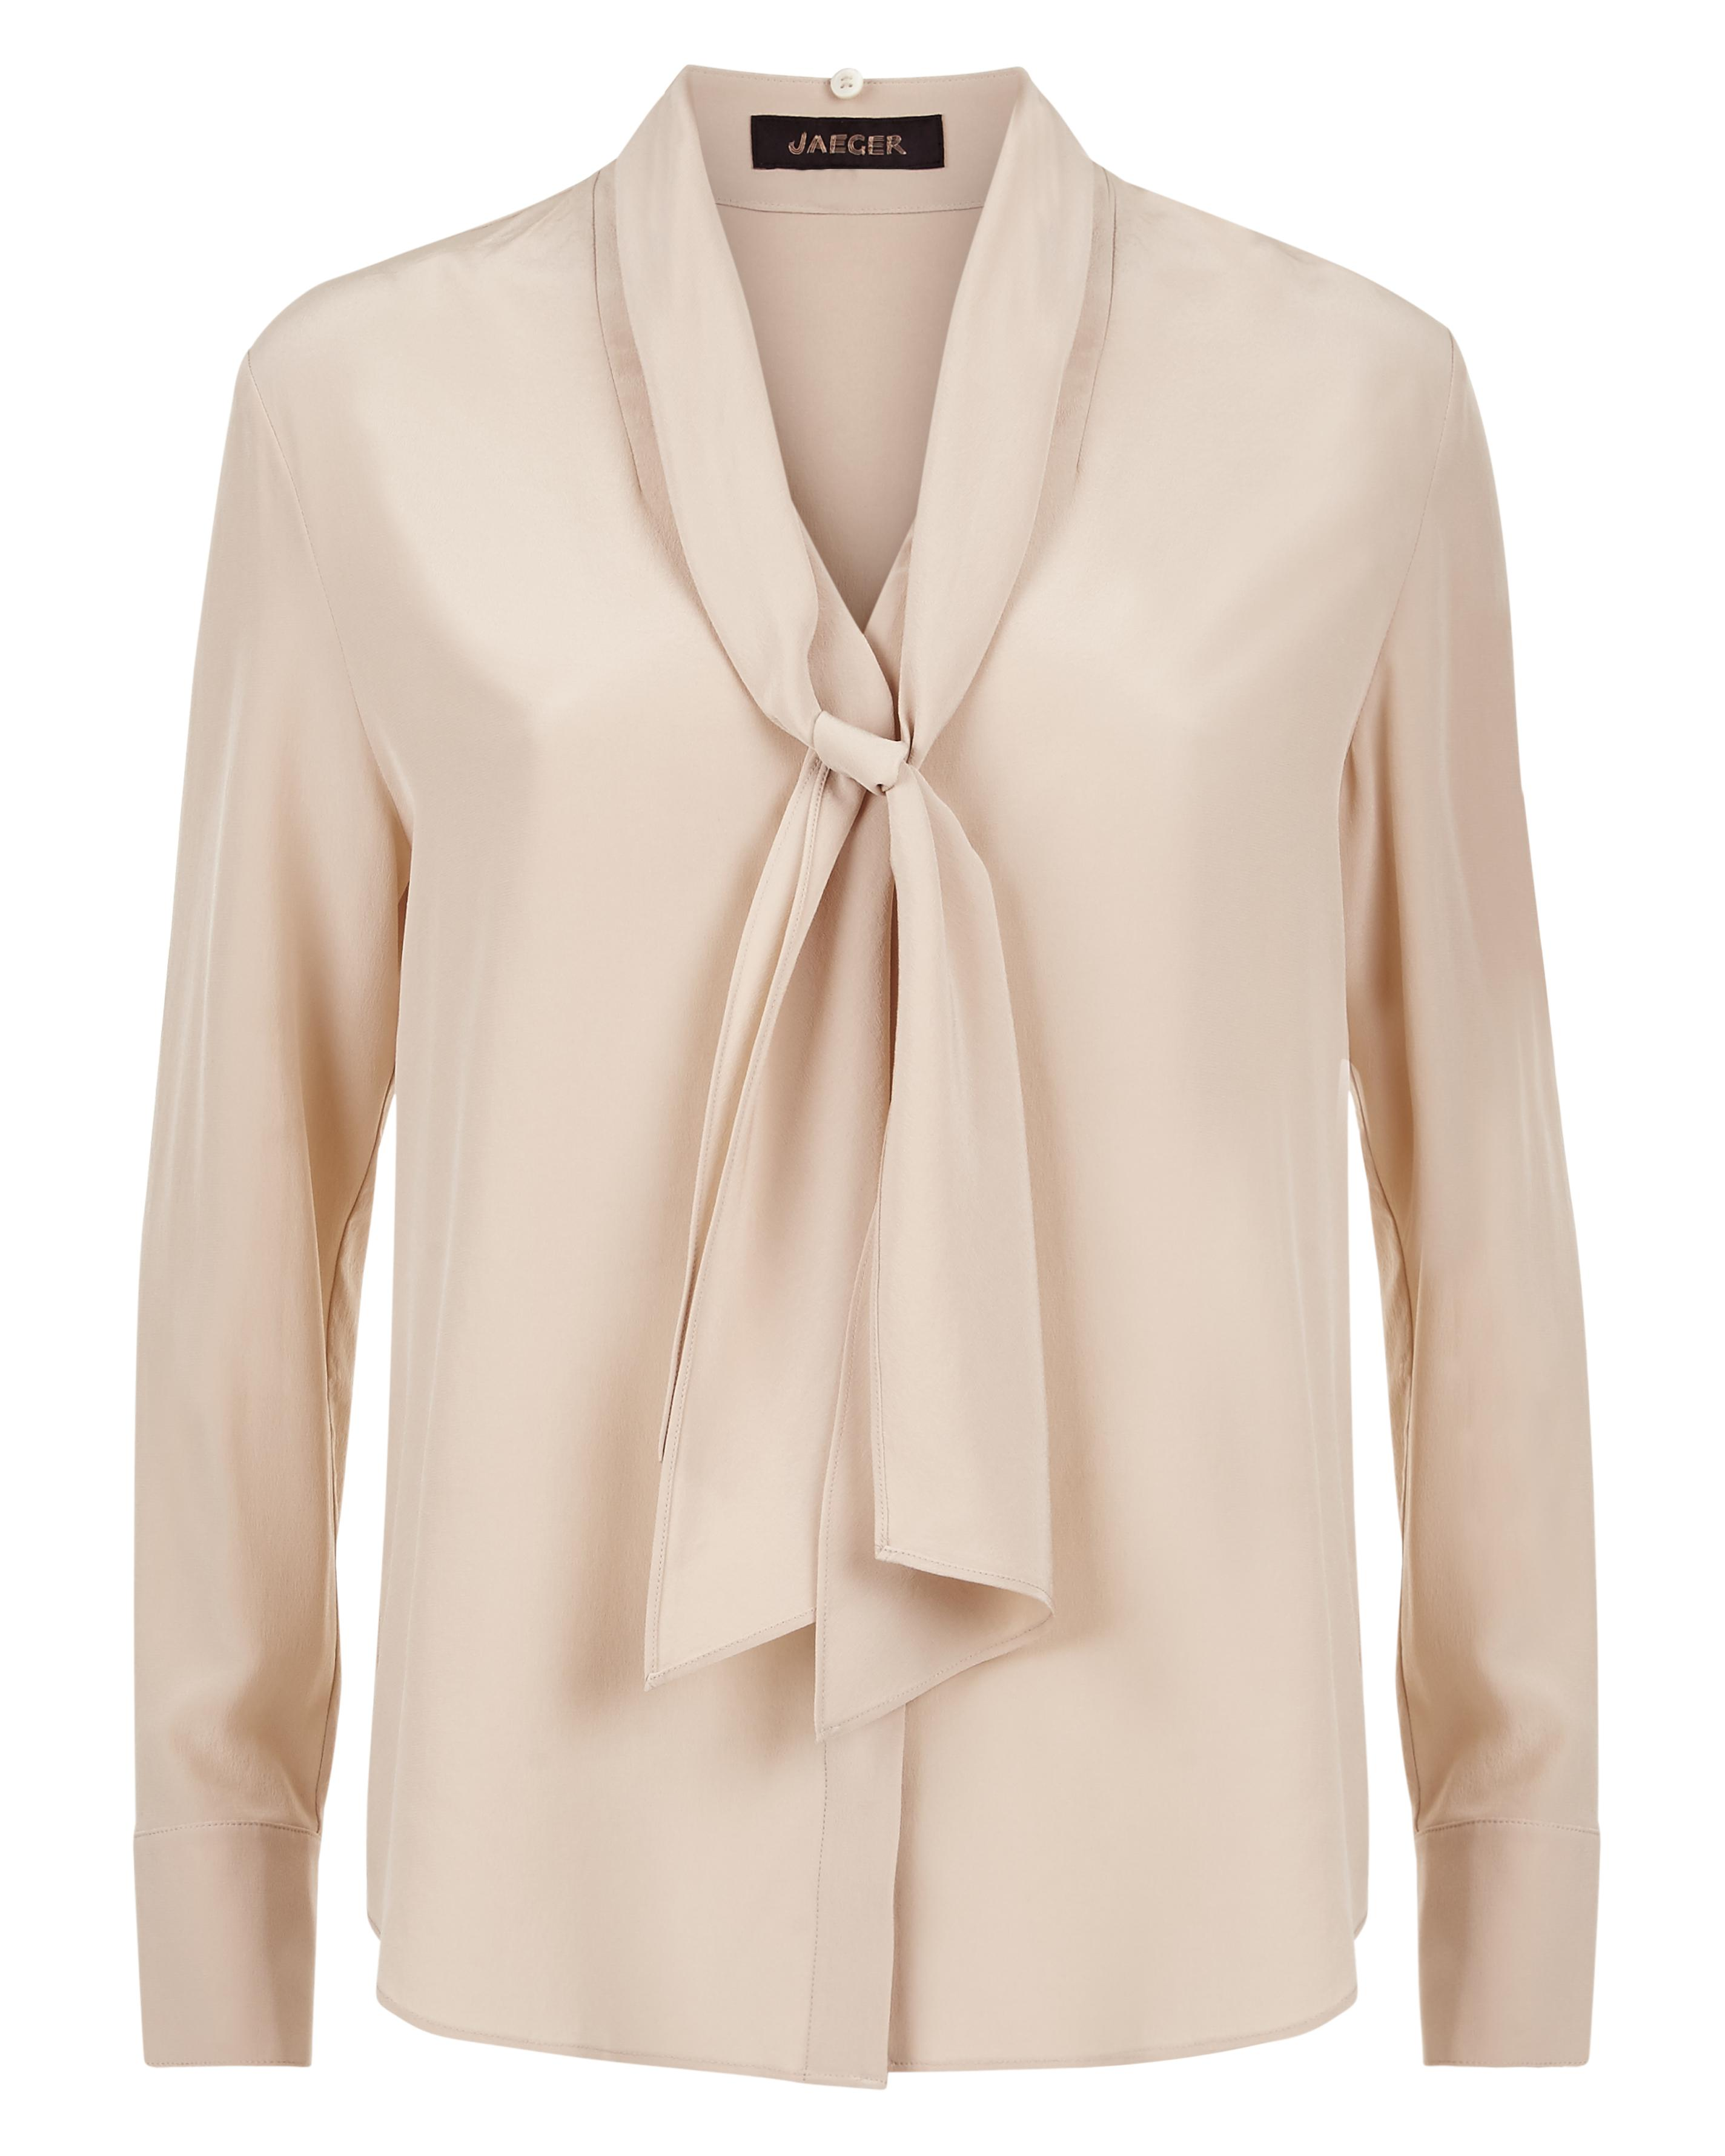 32a5048763f51 Jaeger Silk Tie-neck Blouse in Natural - Lyst